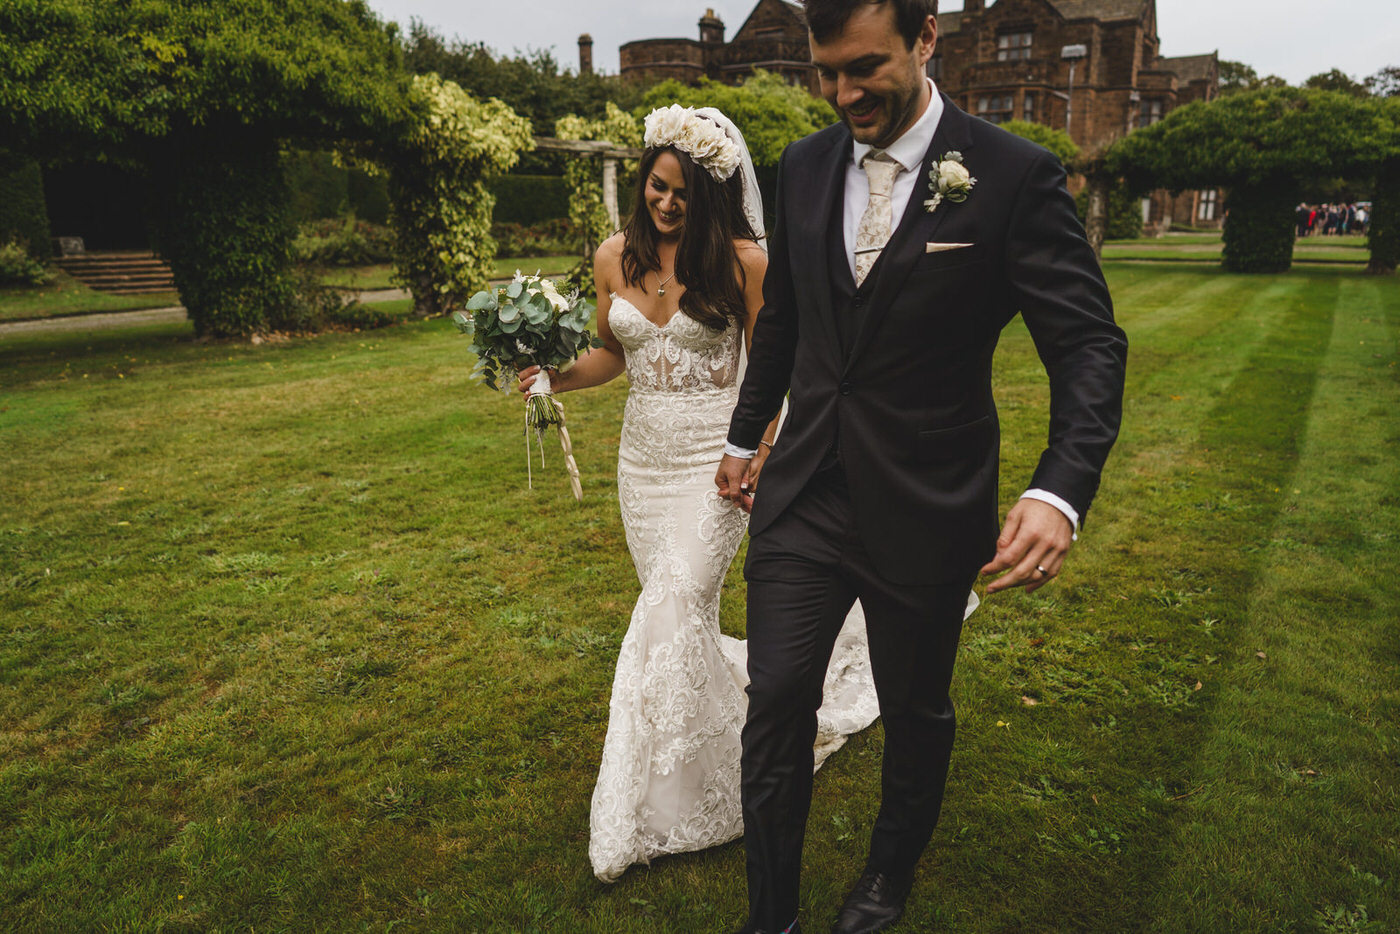 the beautiful bride and her groom taking some time to walk around the wedding venue grounds